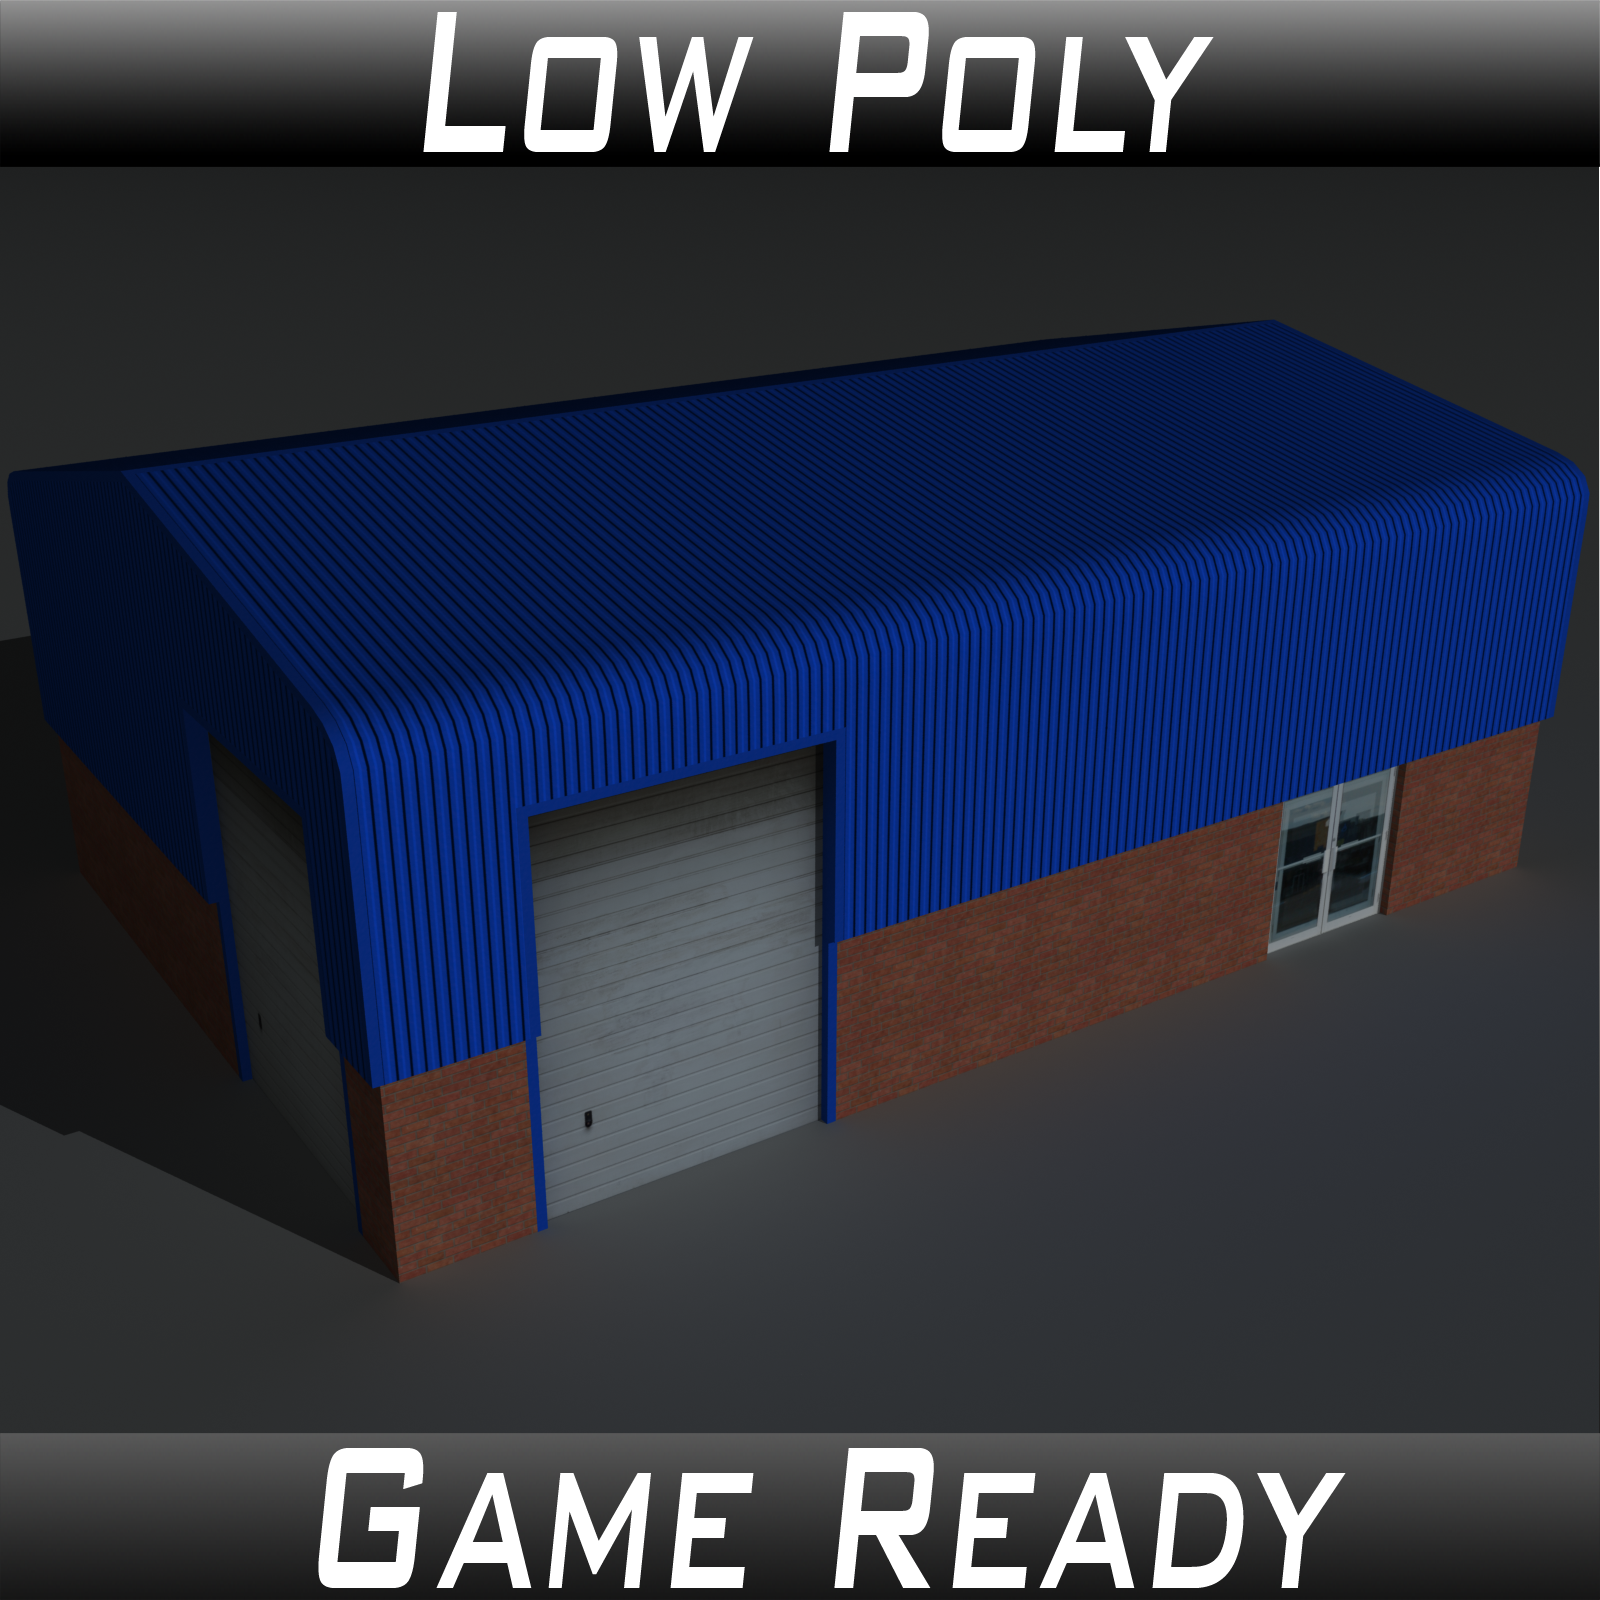 Low Poly Factory Building 7 - Extended Licence by 3dlands